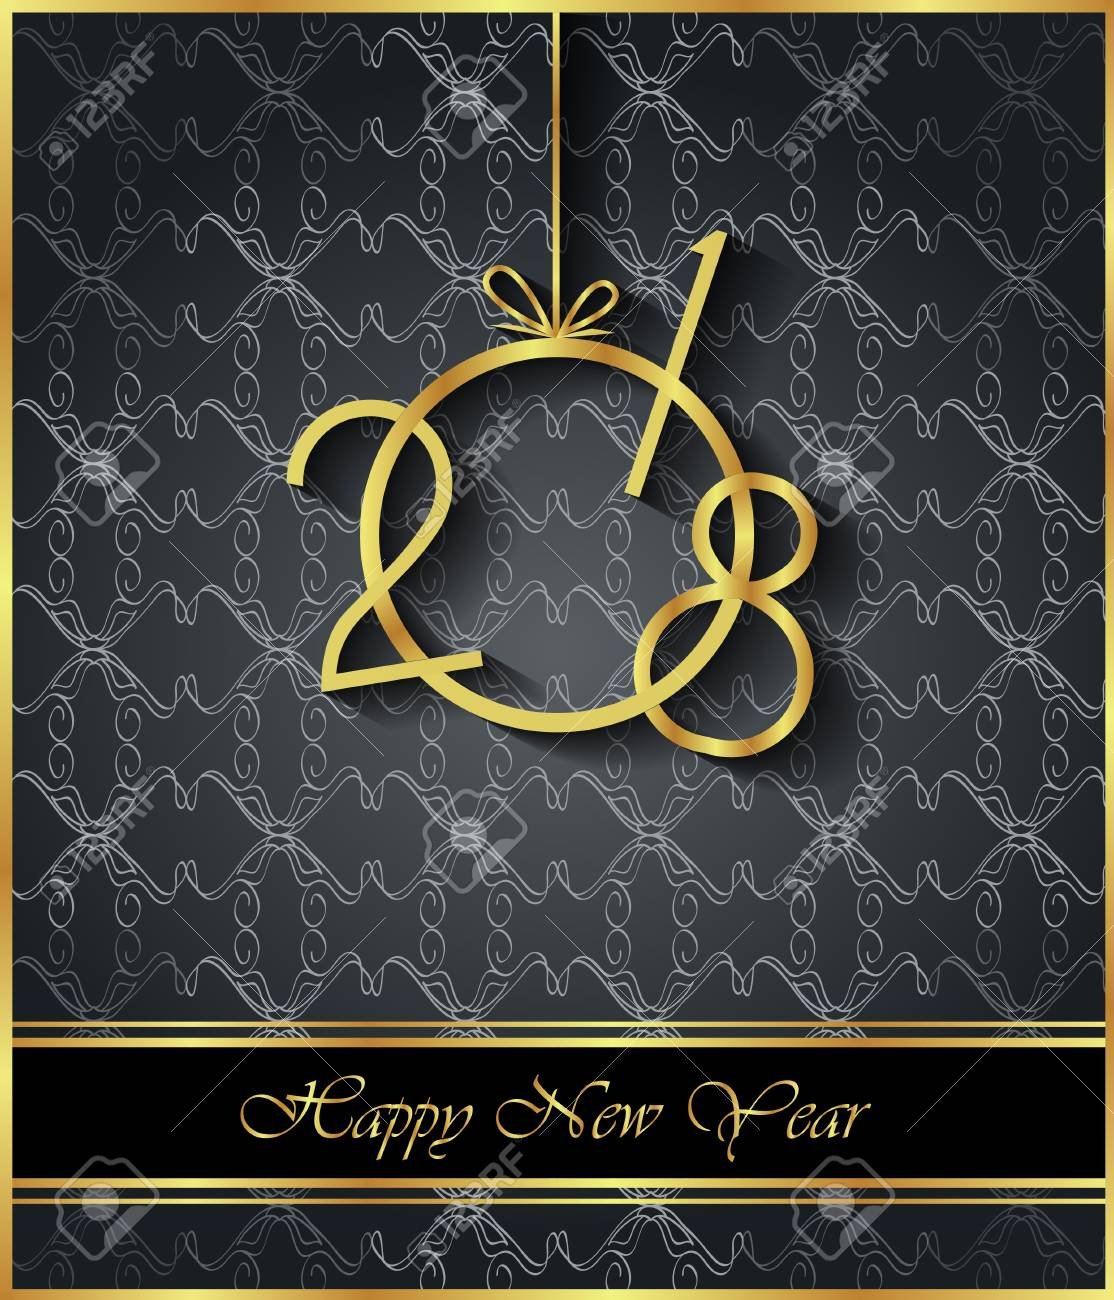 2018 happy new year background for your invitations festive posters greetings cards stock